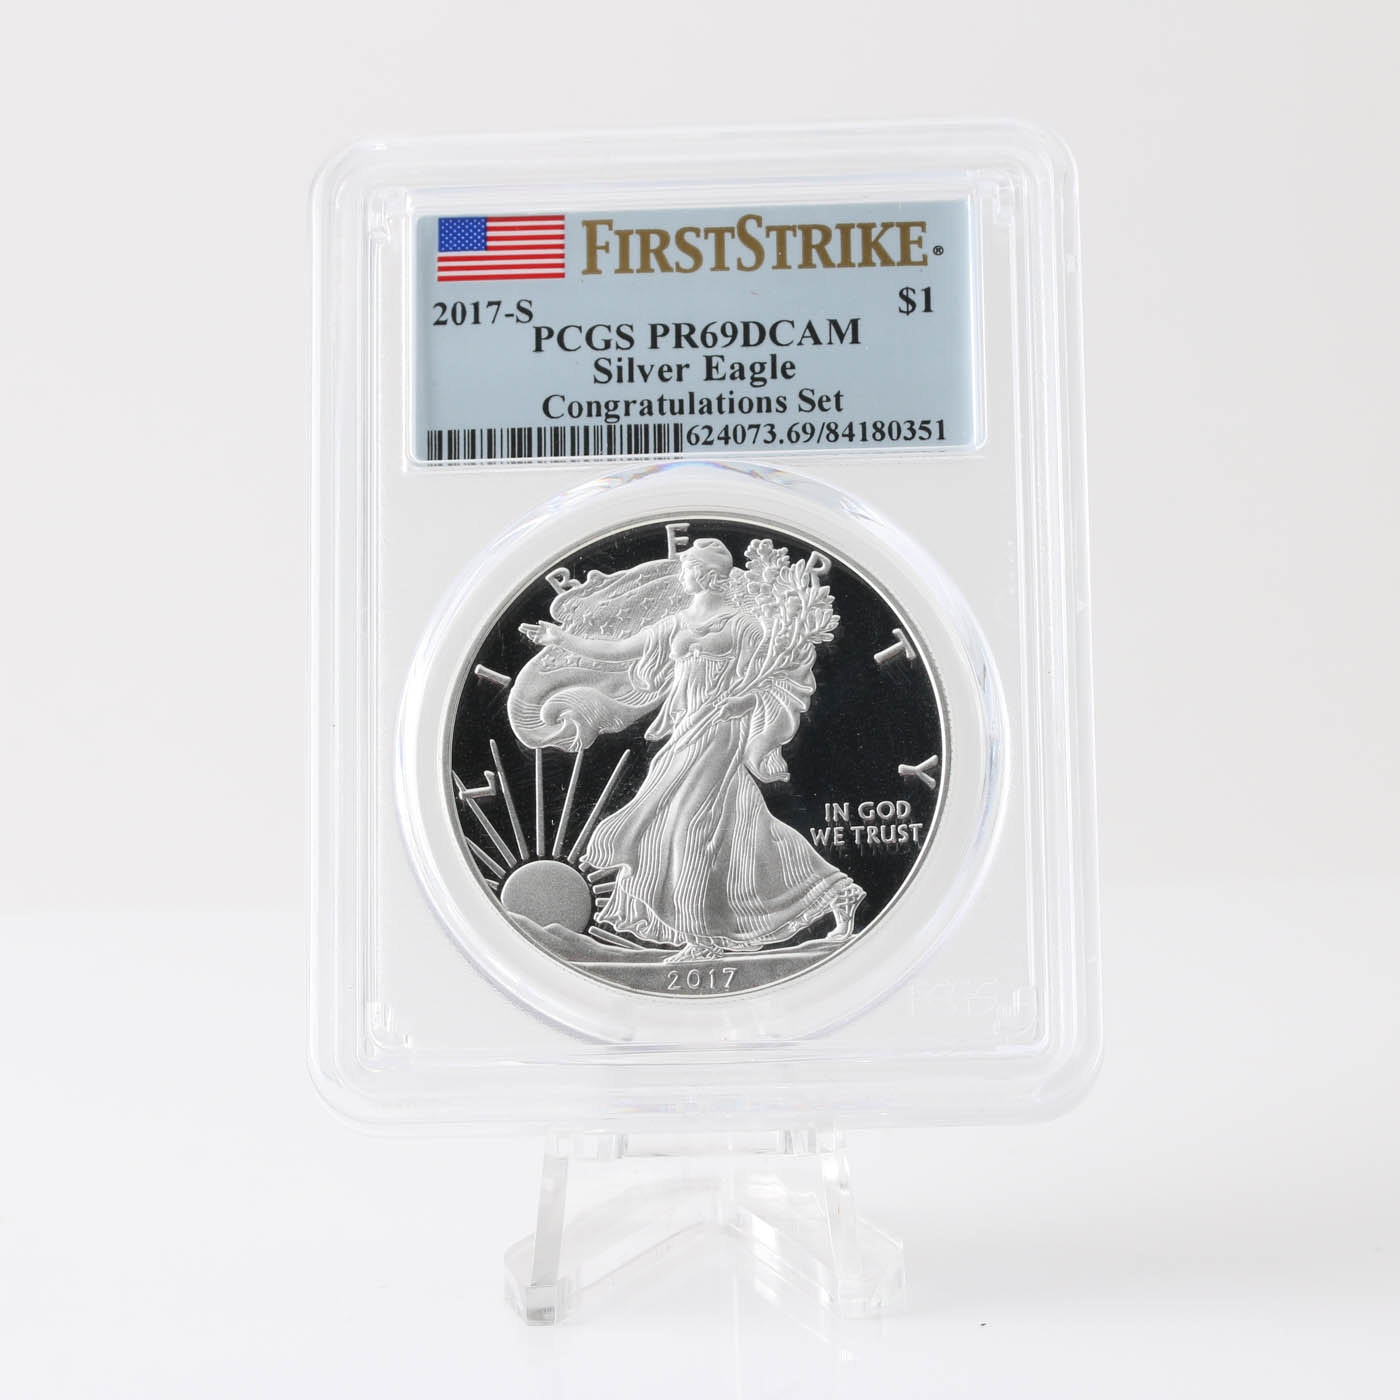 Graded PR69 DCAM (By PCGS) 2017-S One Dollar U.S. Silver Eagle